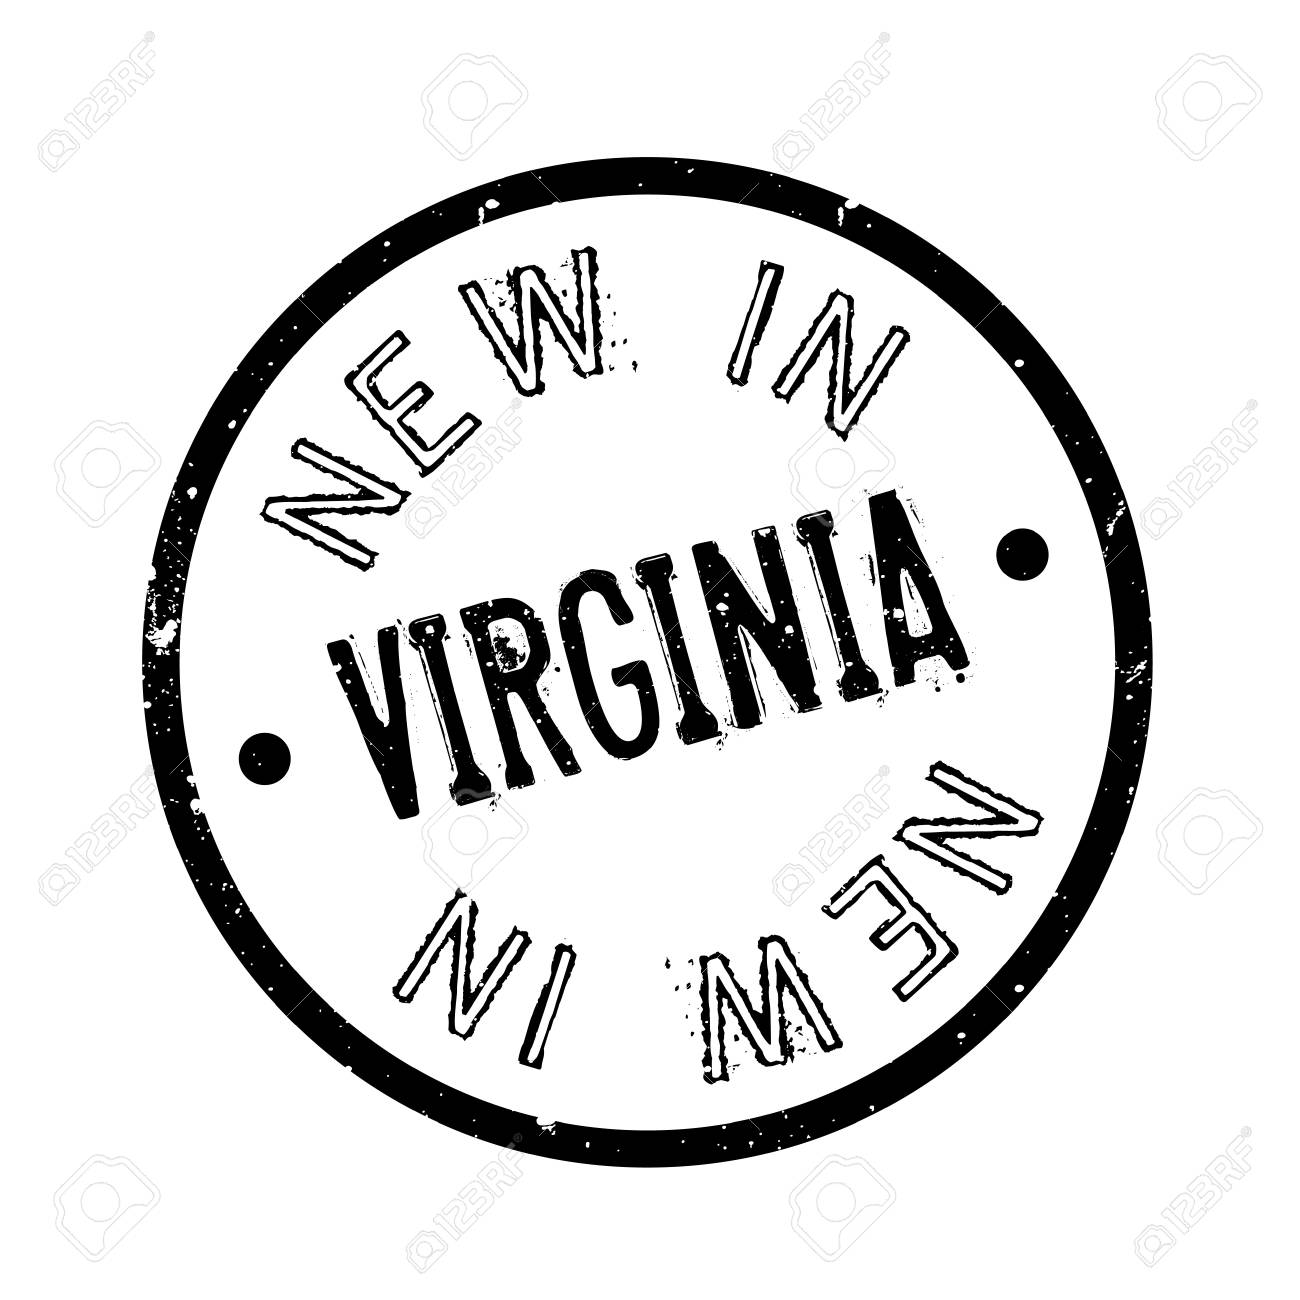 New In Virginia Rubber Stamp Grunge Design With Dust Scratches Effects Can Be Easily